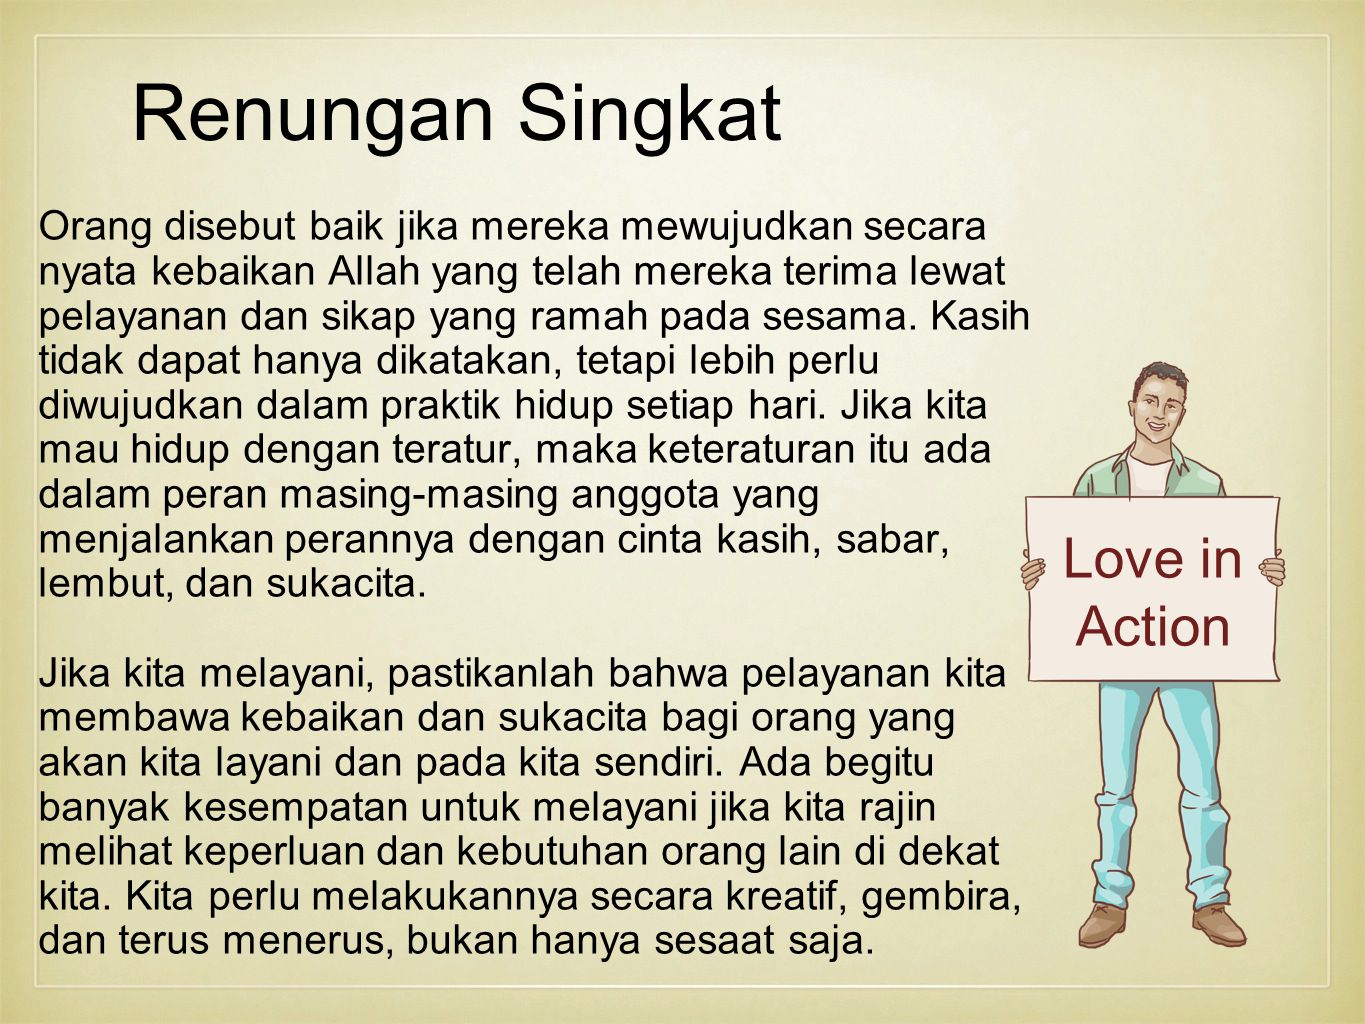 Renungan Singkat Love in Action